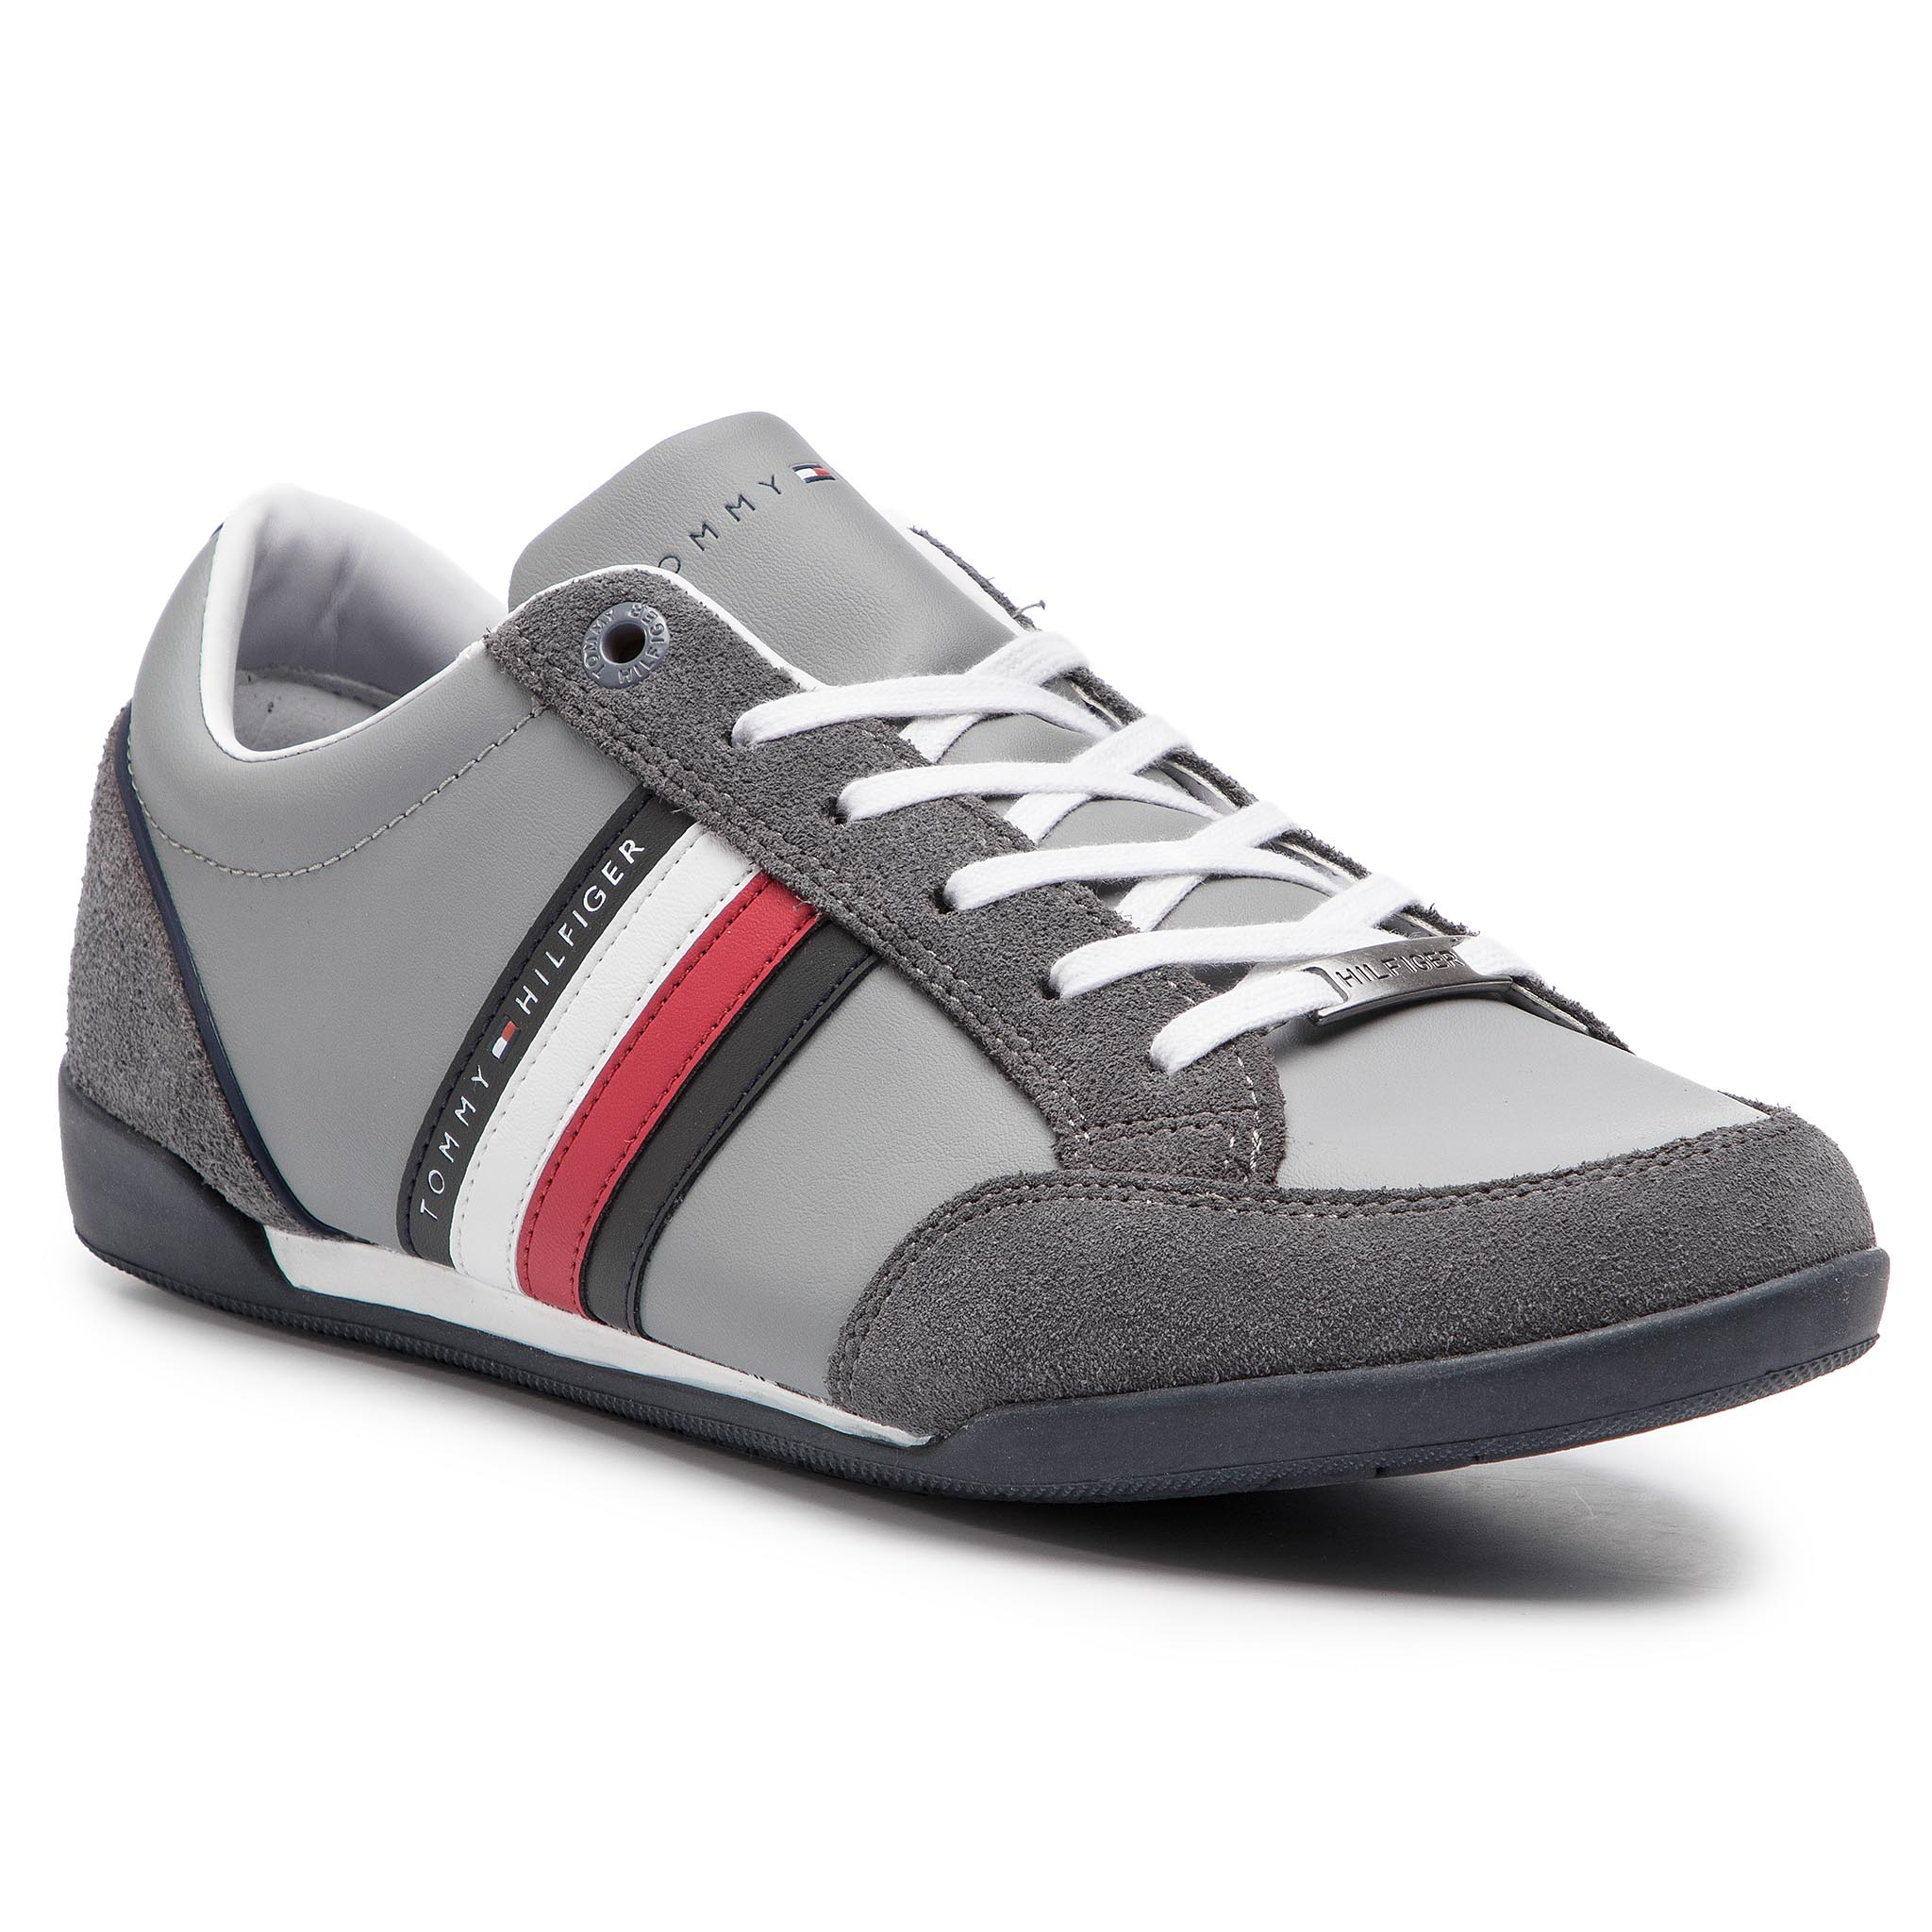 Sneakers TOMMY HILFIGER - Corporate Material Mix Cupsole FM0FM02046 Steel Grey 039